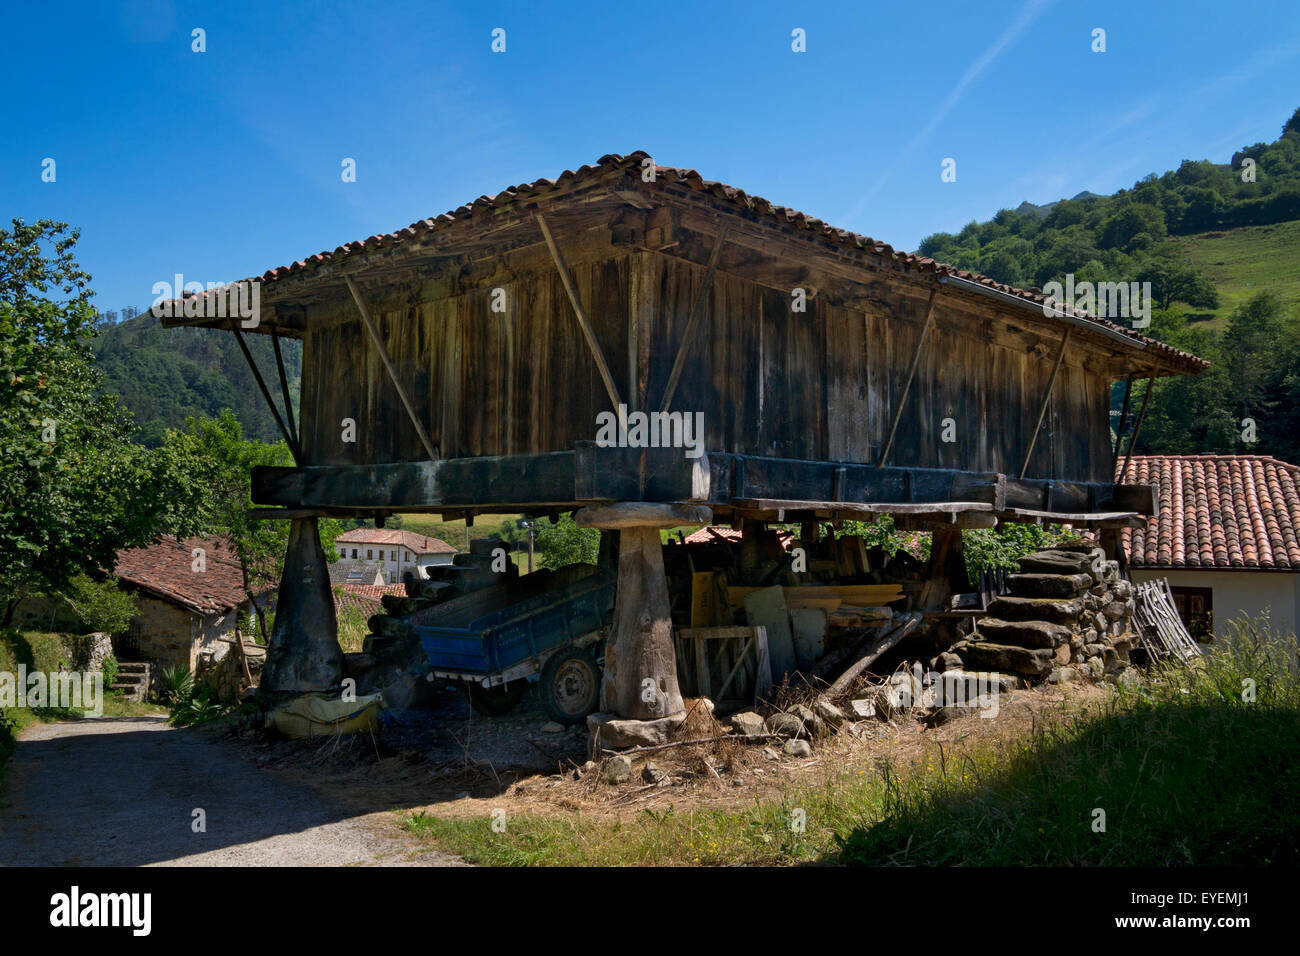 Traditional Old Horreo granary store in rural village of Asturias,Northern Spain - Stock Image